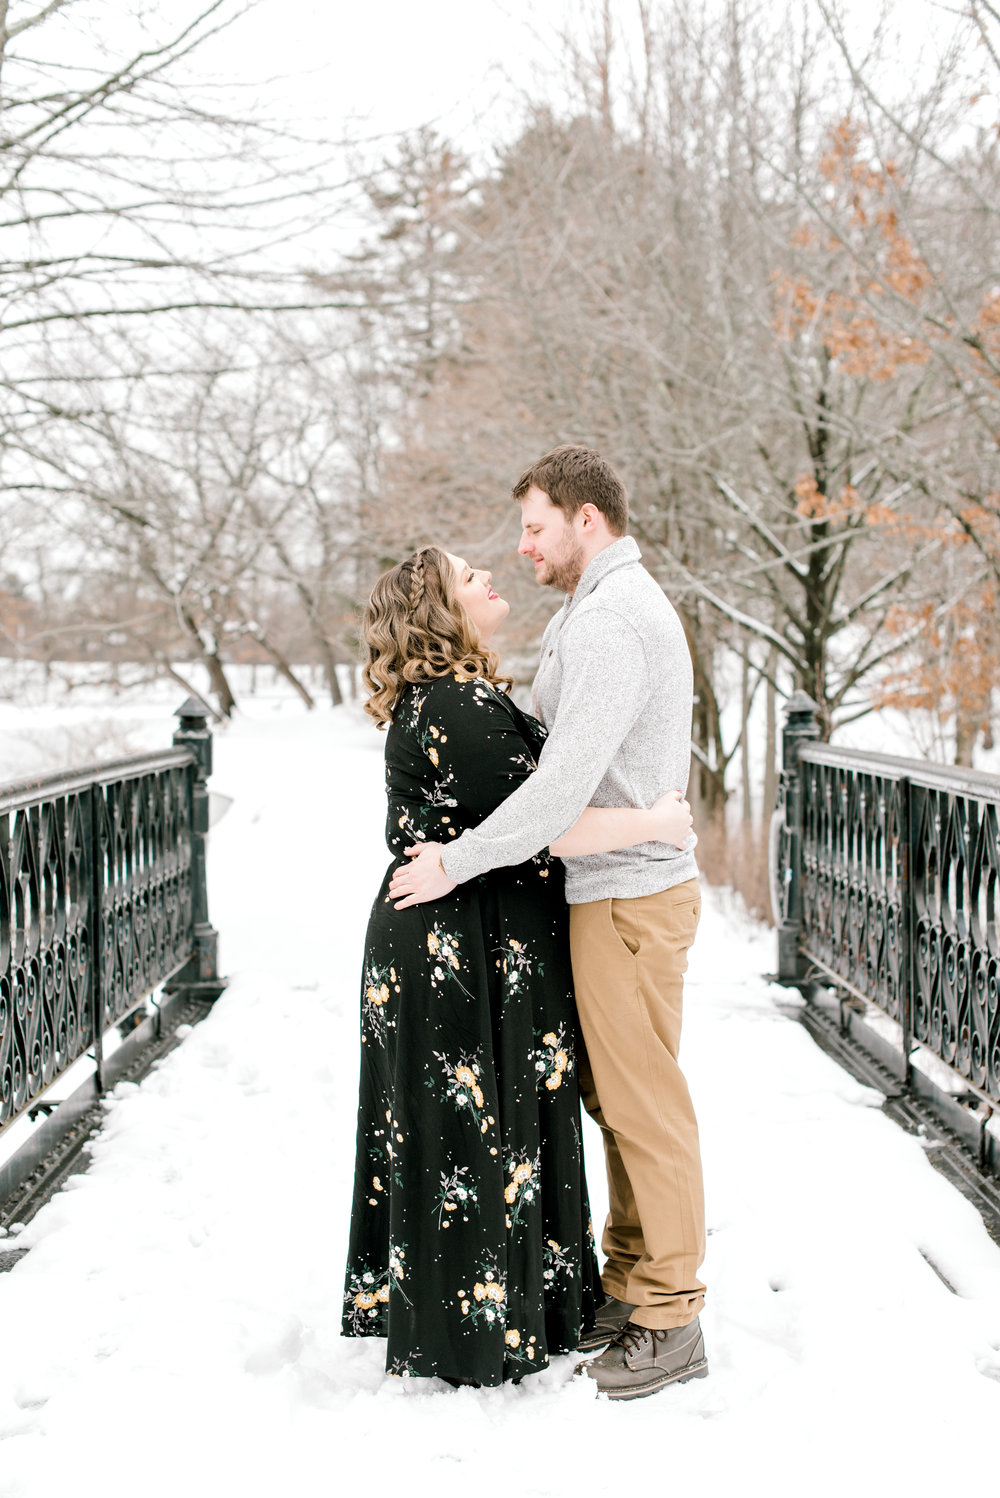 1march2019-roger-williams-park-snow-engagement-session-1.jpg